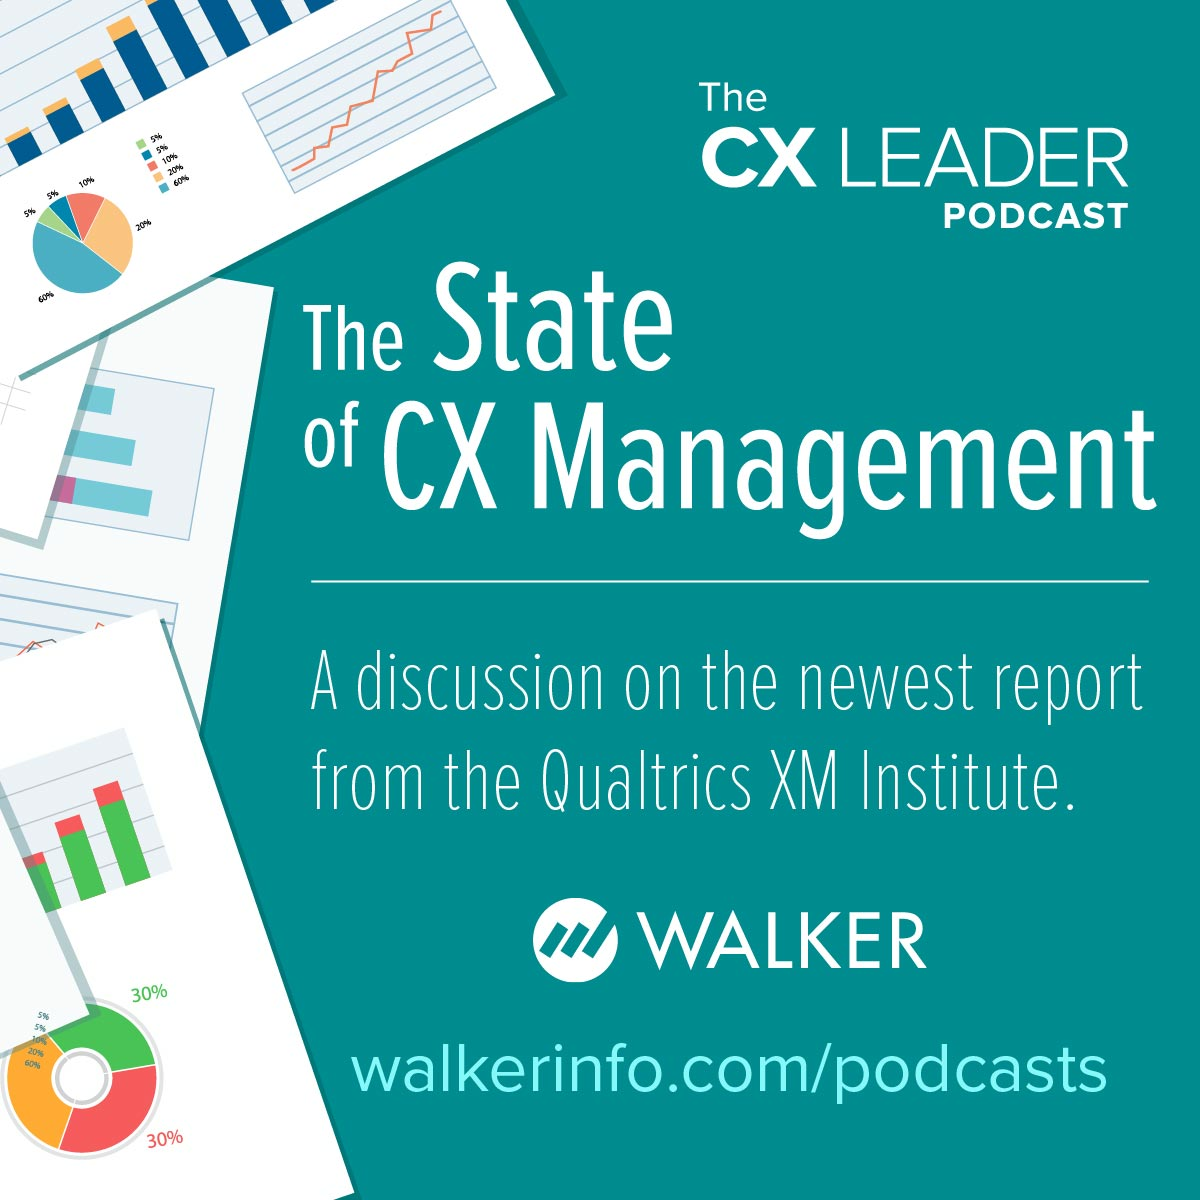 The State of CX Management